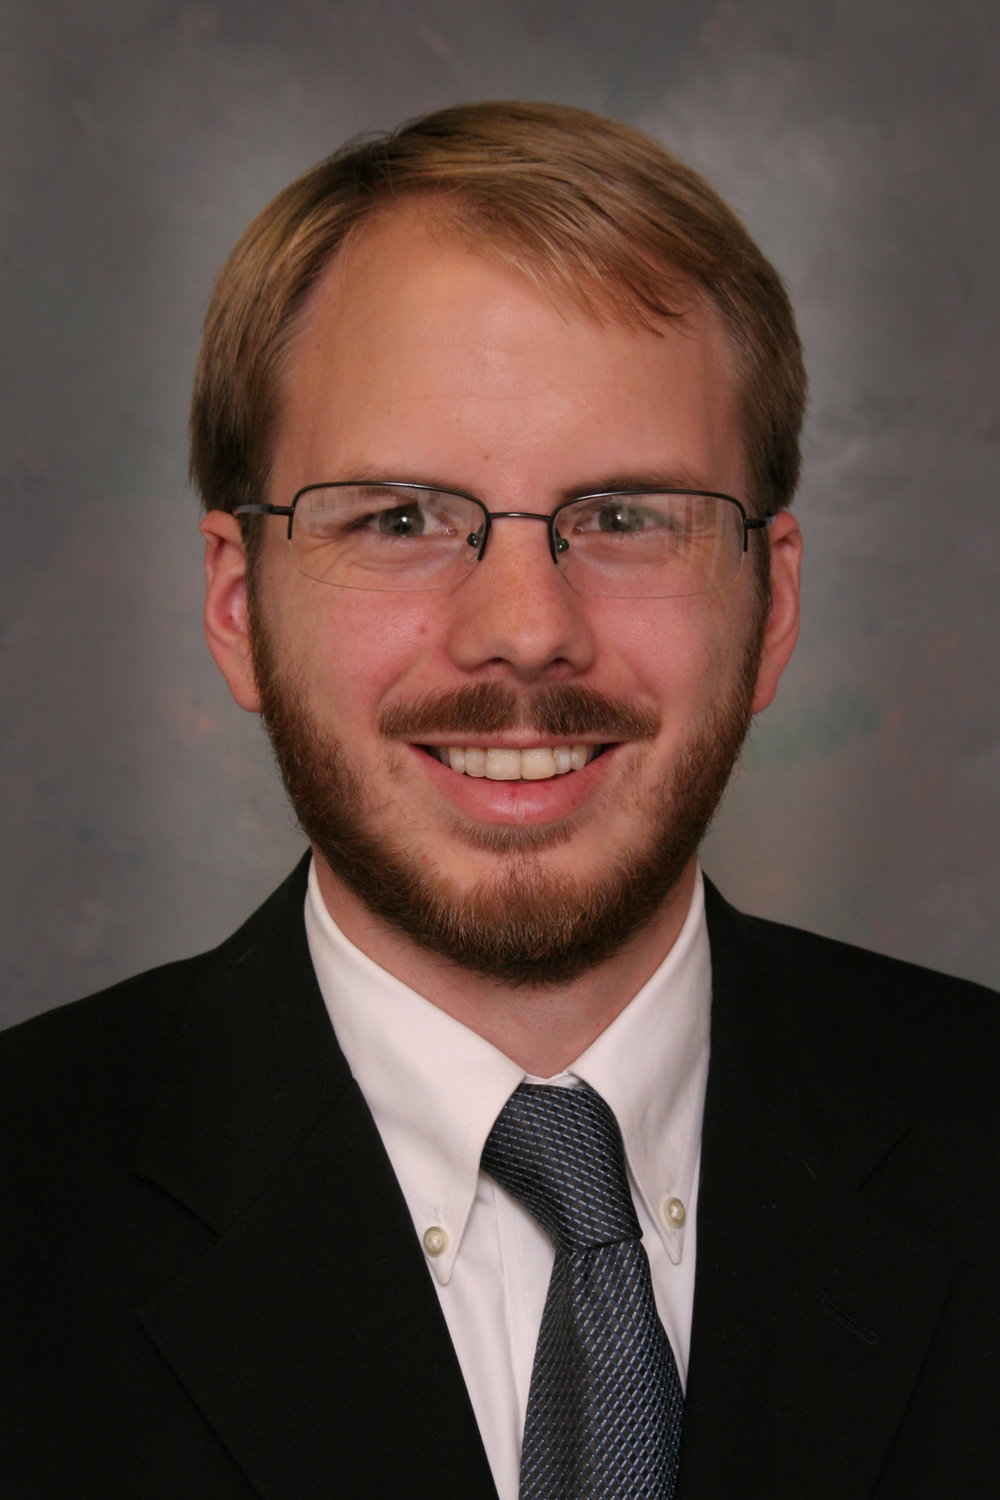 Patrick Cudahy, MD - Current position: Clinical Fellow in Medicine (Infectious Diseases), Yale UniversityEmail